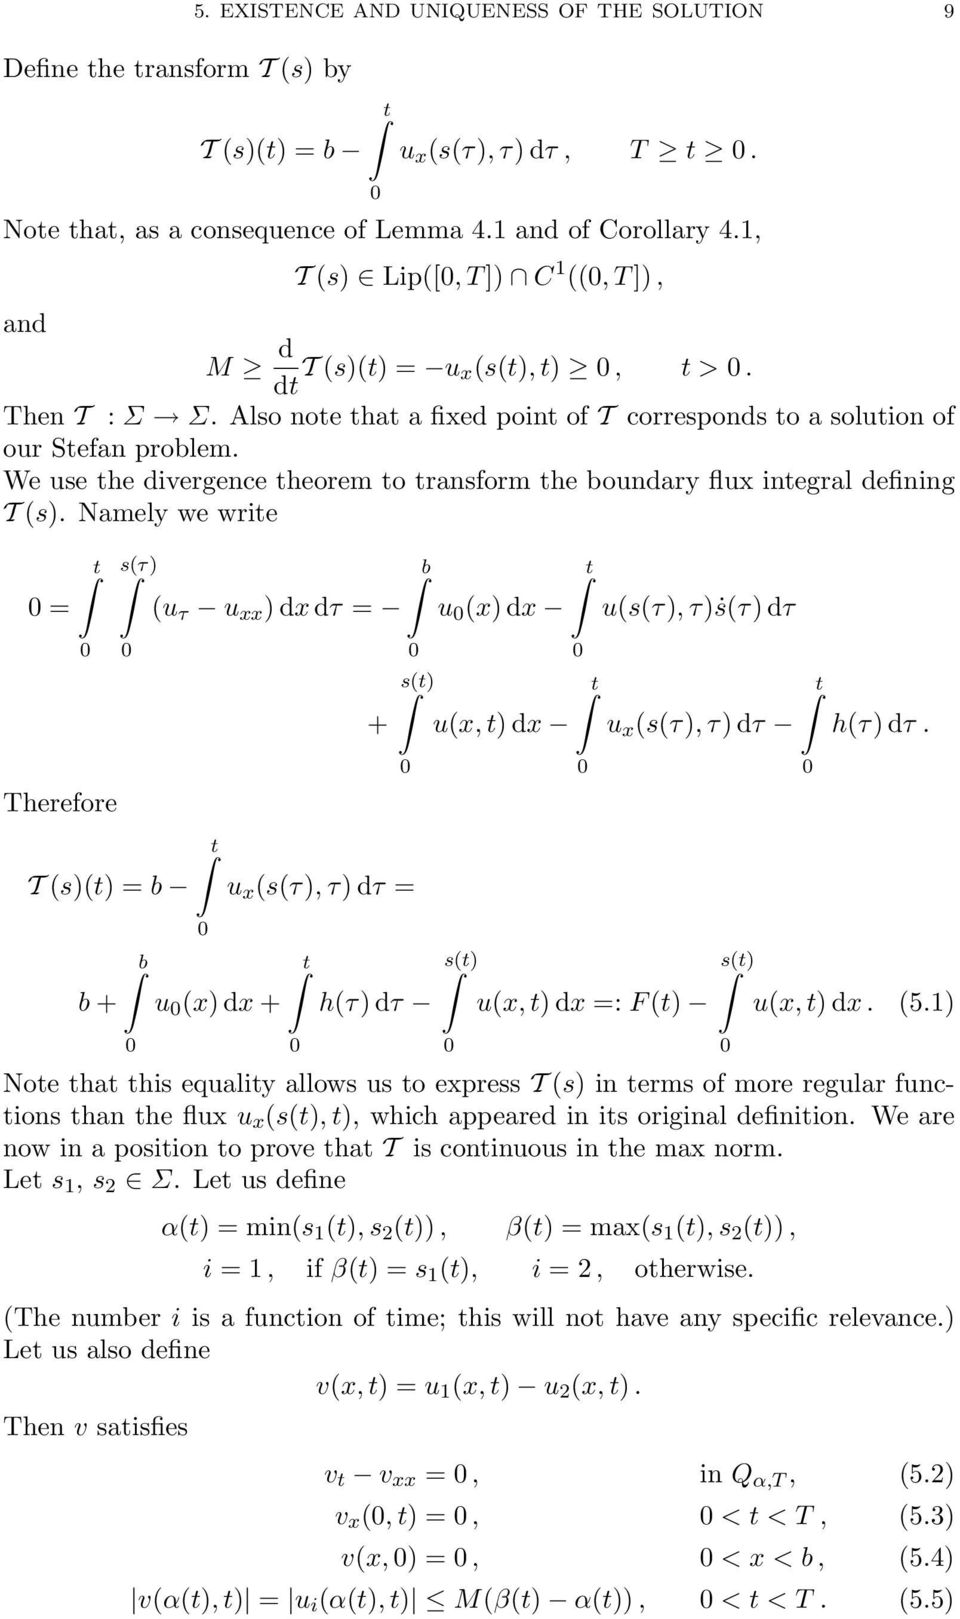 We use the divergence theorem to transform the boundary flux integral defining T (s).